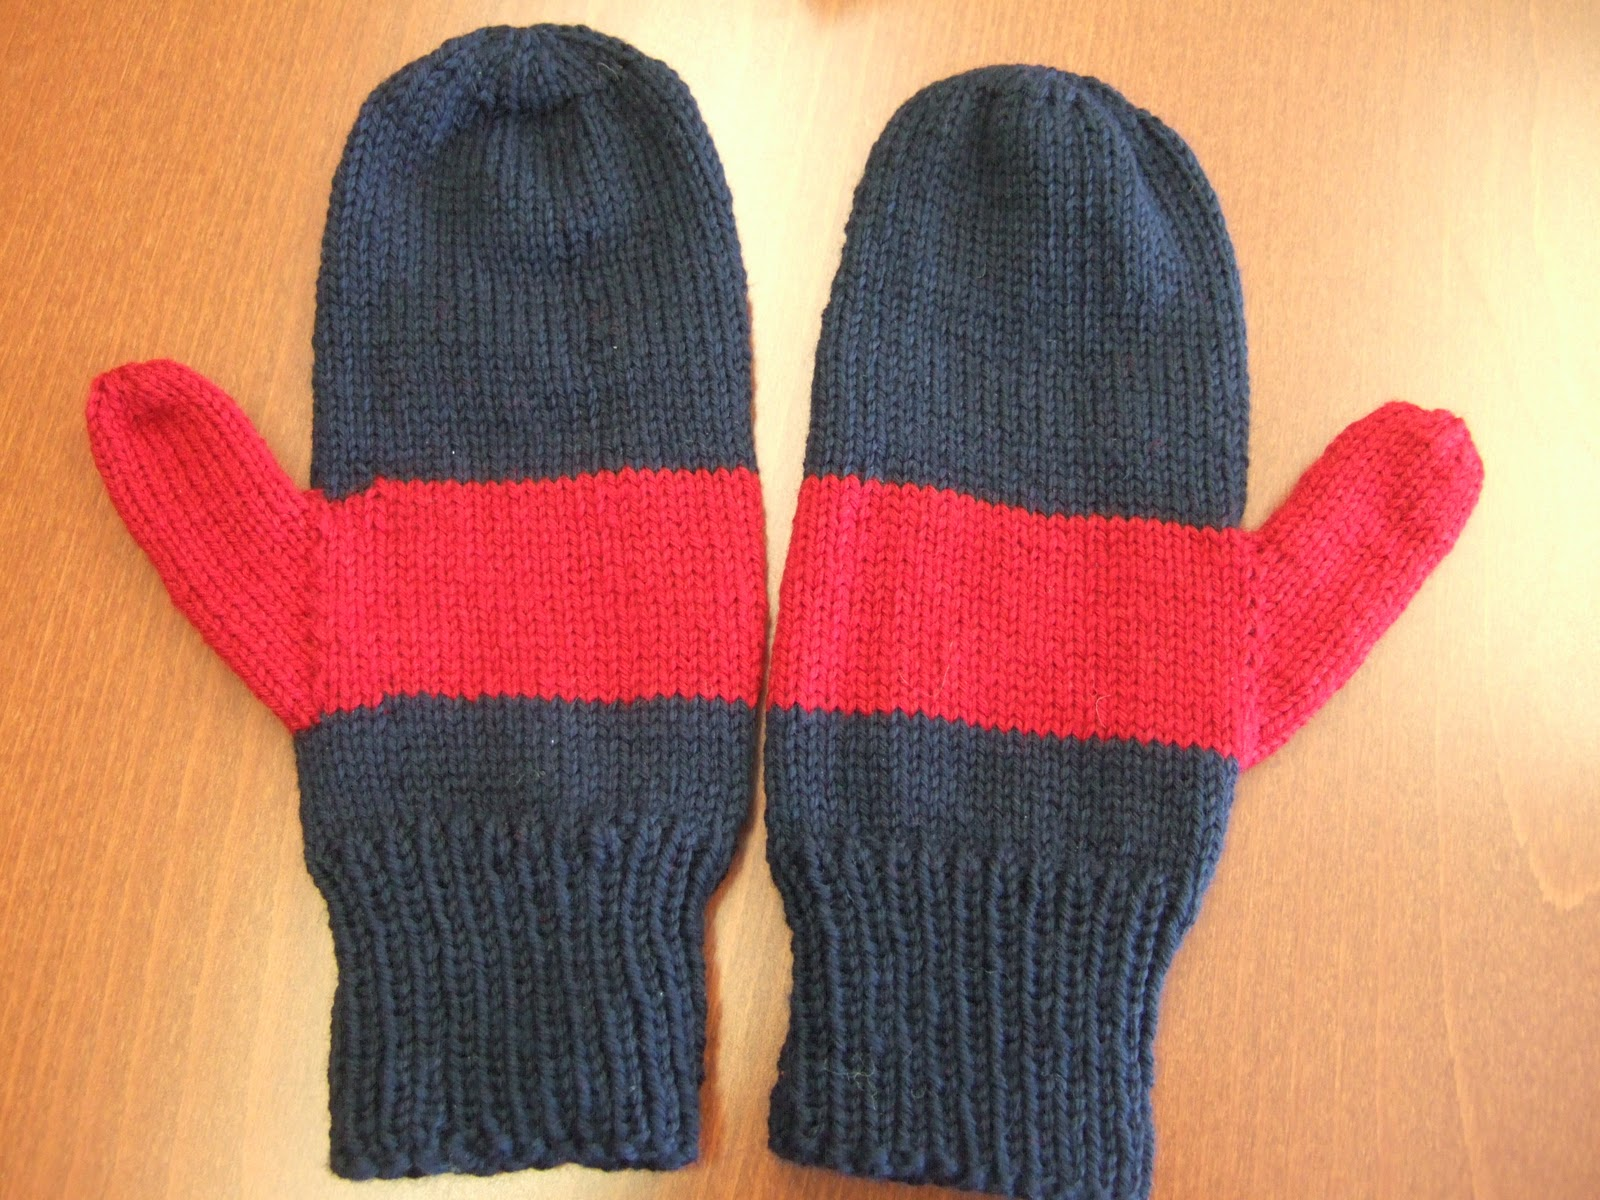 curlerchik knits: easy mittens and my boy\'s birthday